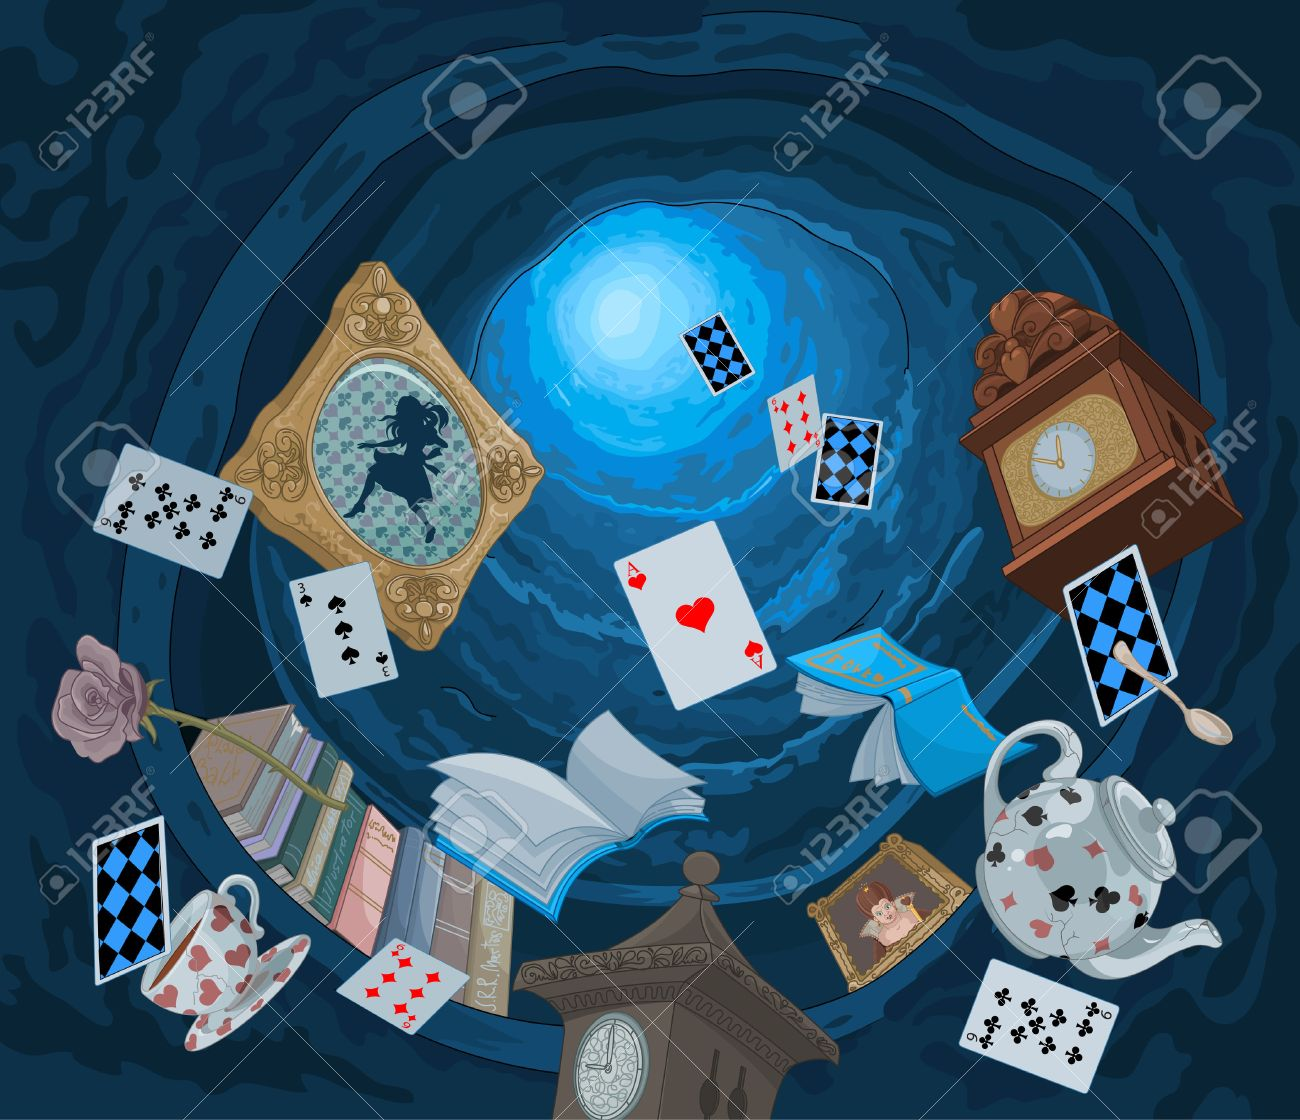 Abstract background of objects falling down in rabbit hole - 59842388